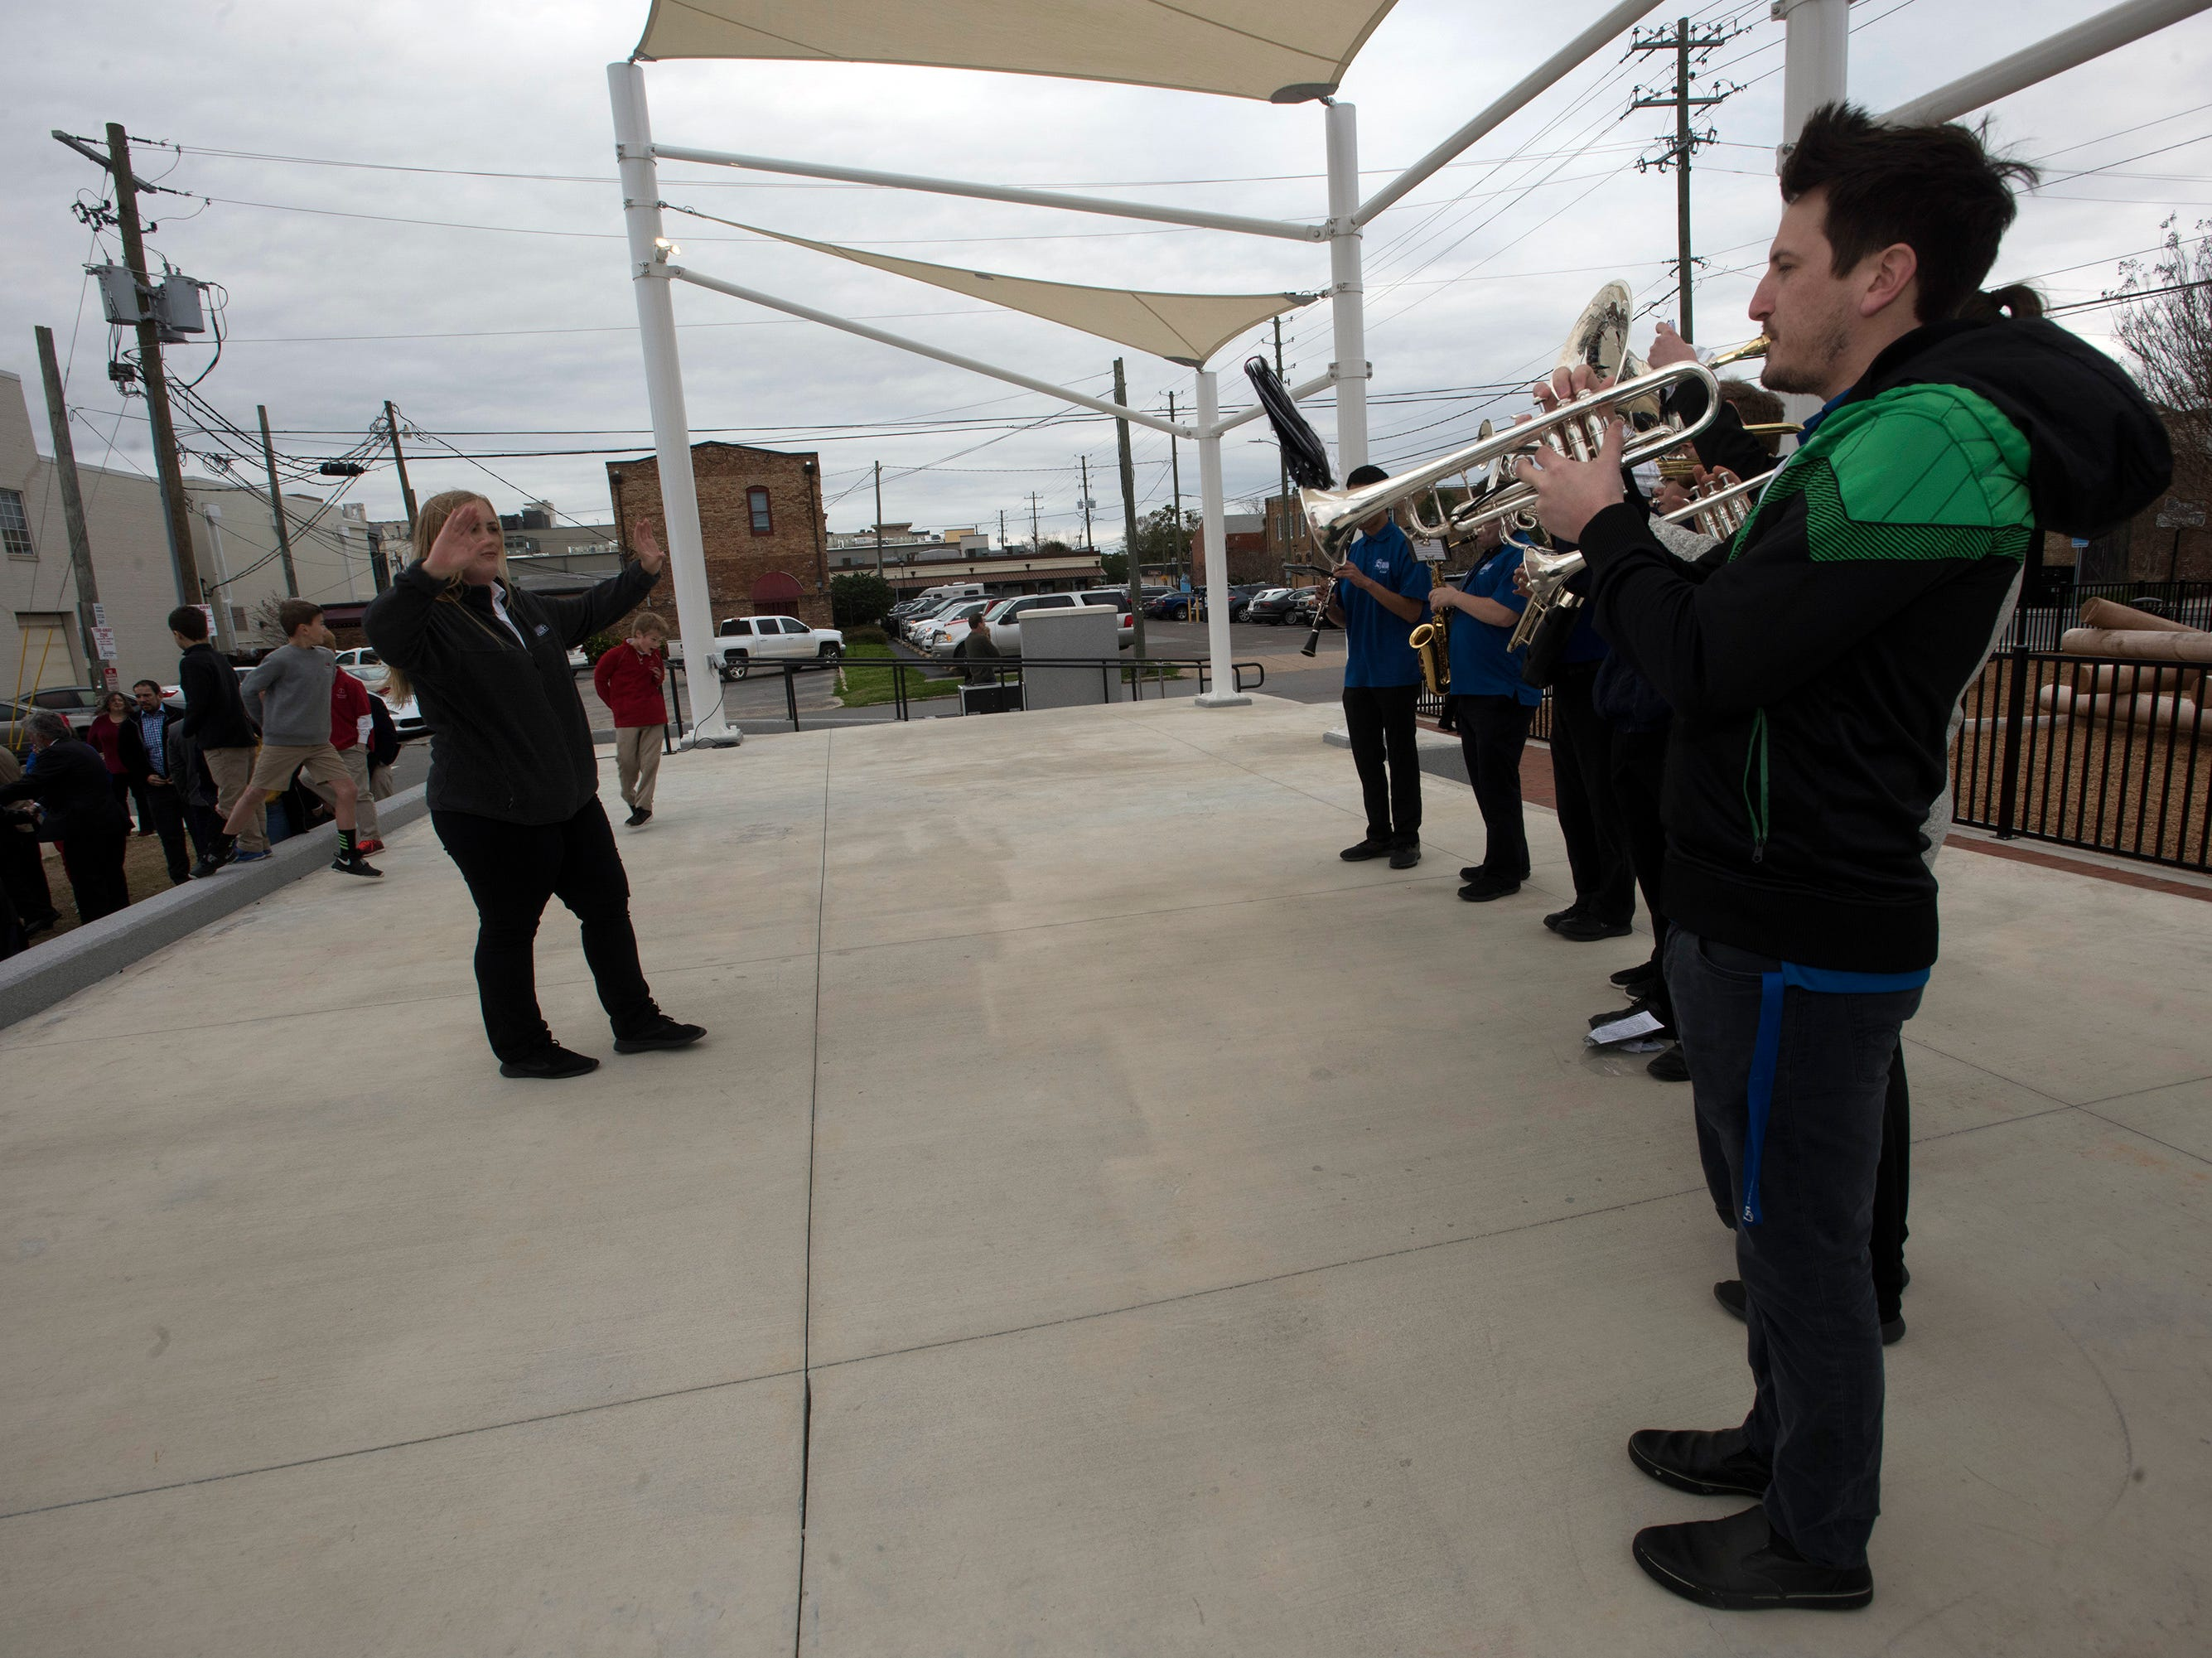 Members of the University of West Florida Athletic Band provide the music at the dedication for UWF's new Museum Plaza on Friday, Feb 8, 2019.   The new downtown park is behind  The T. T. Wentworth Jr. Florida State Museum